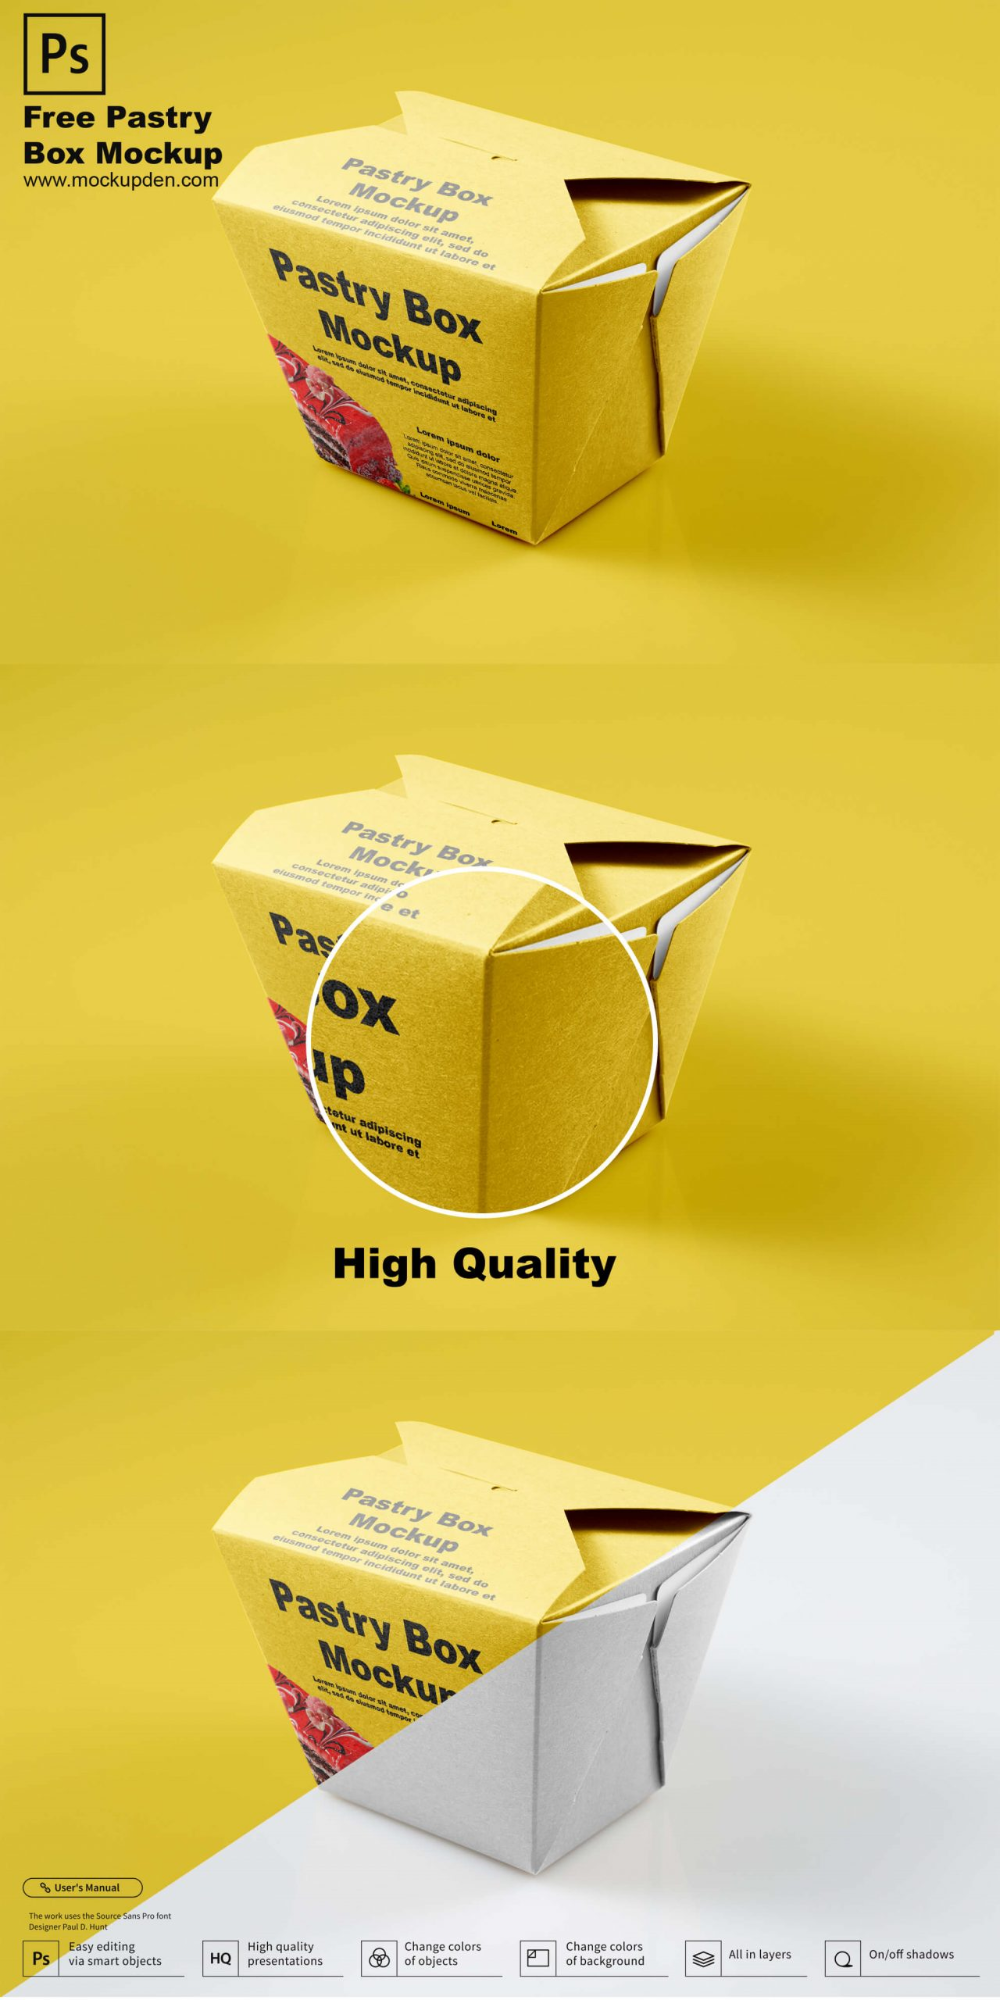 Download 30 Best Free Box Mockup Psd Packaging Template 2020 Edition Box Mockup Packaging Template Free Boxes